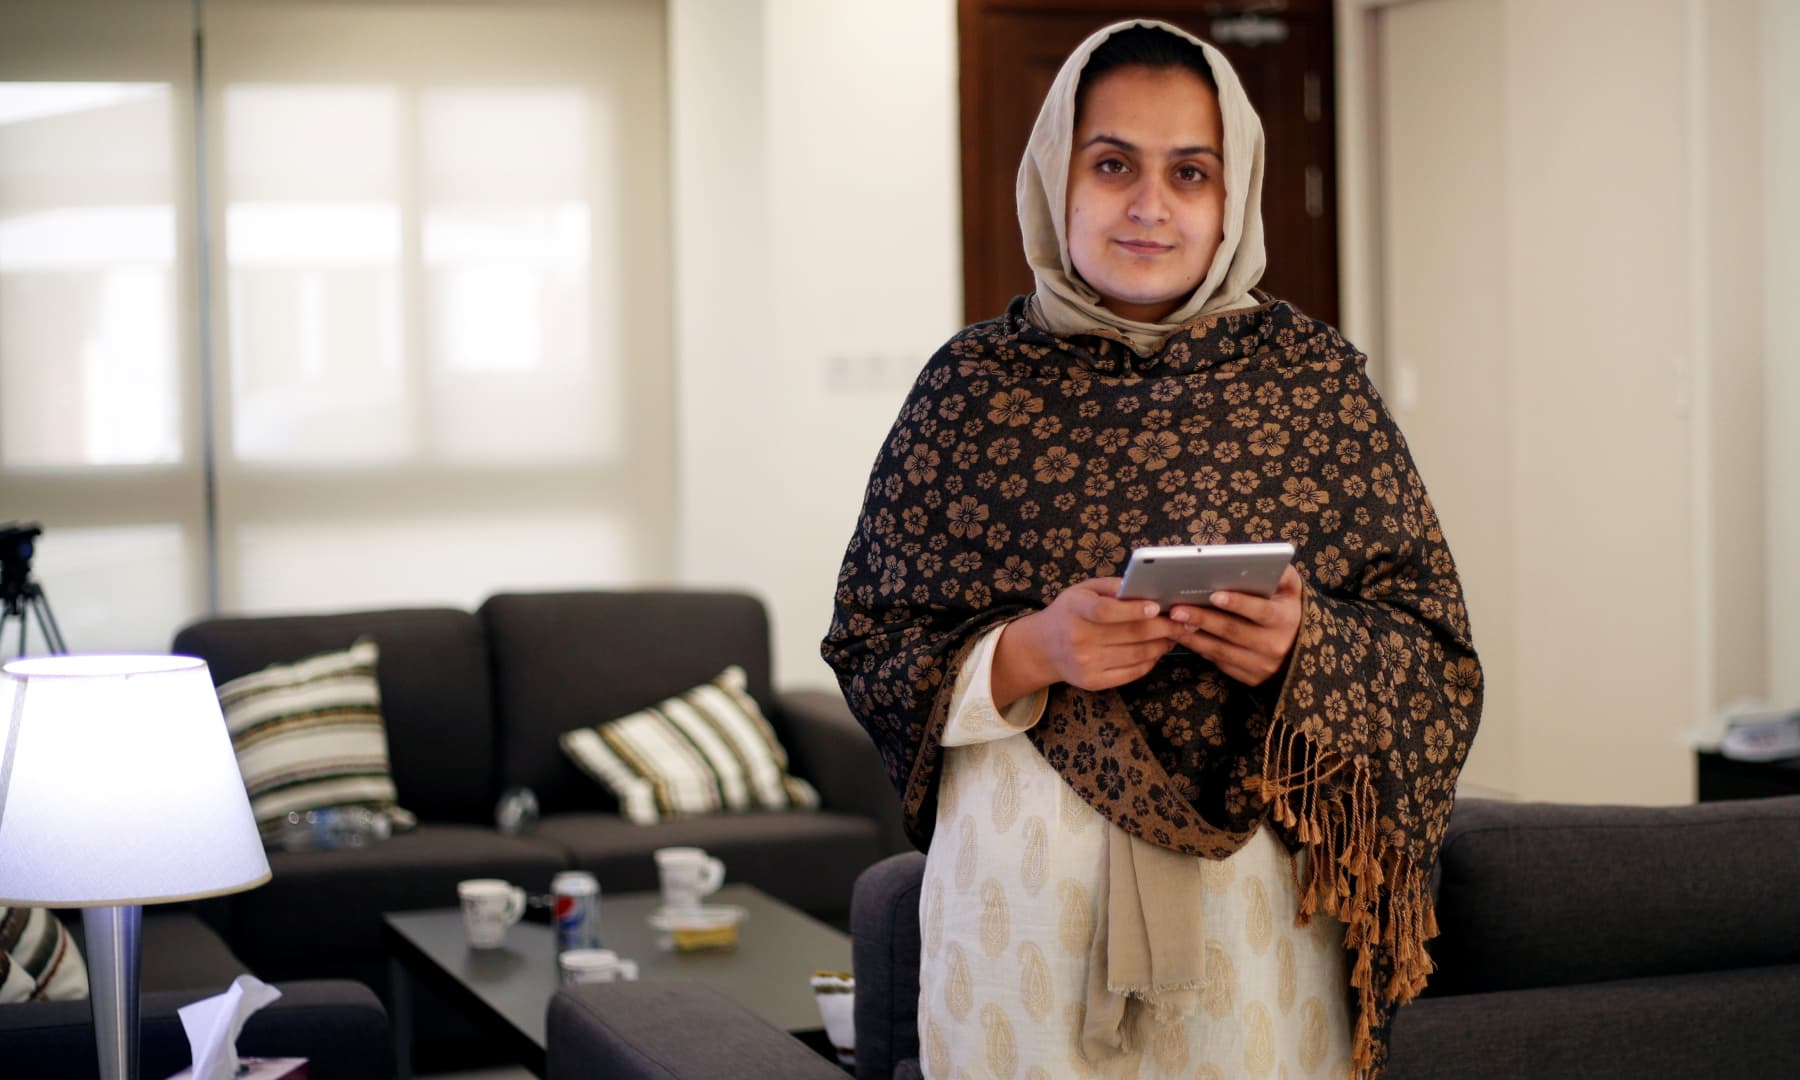 Afghan news anchor Beheshta Arghand poses for a photo at a temporary residence compound in Doha, Qatar on September 1, 2021. — Reuters